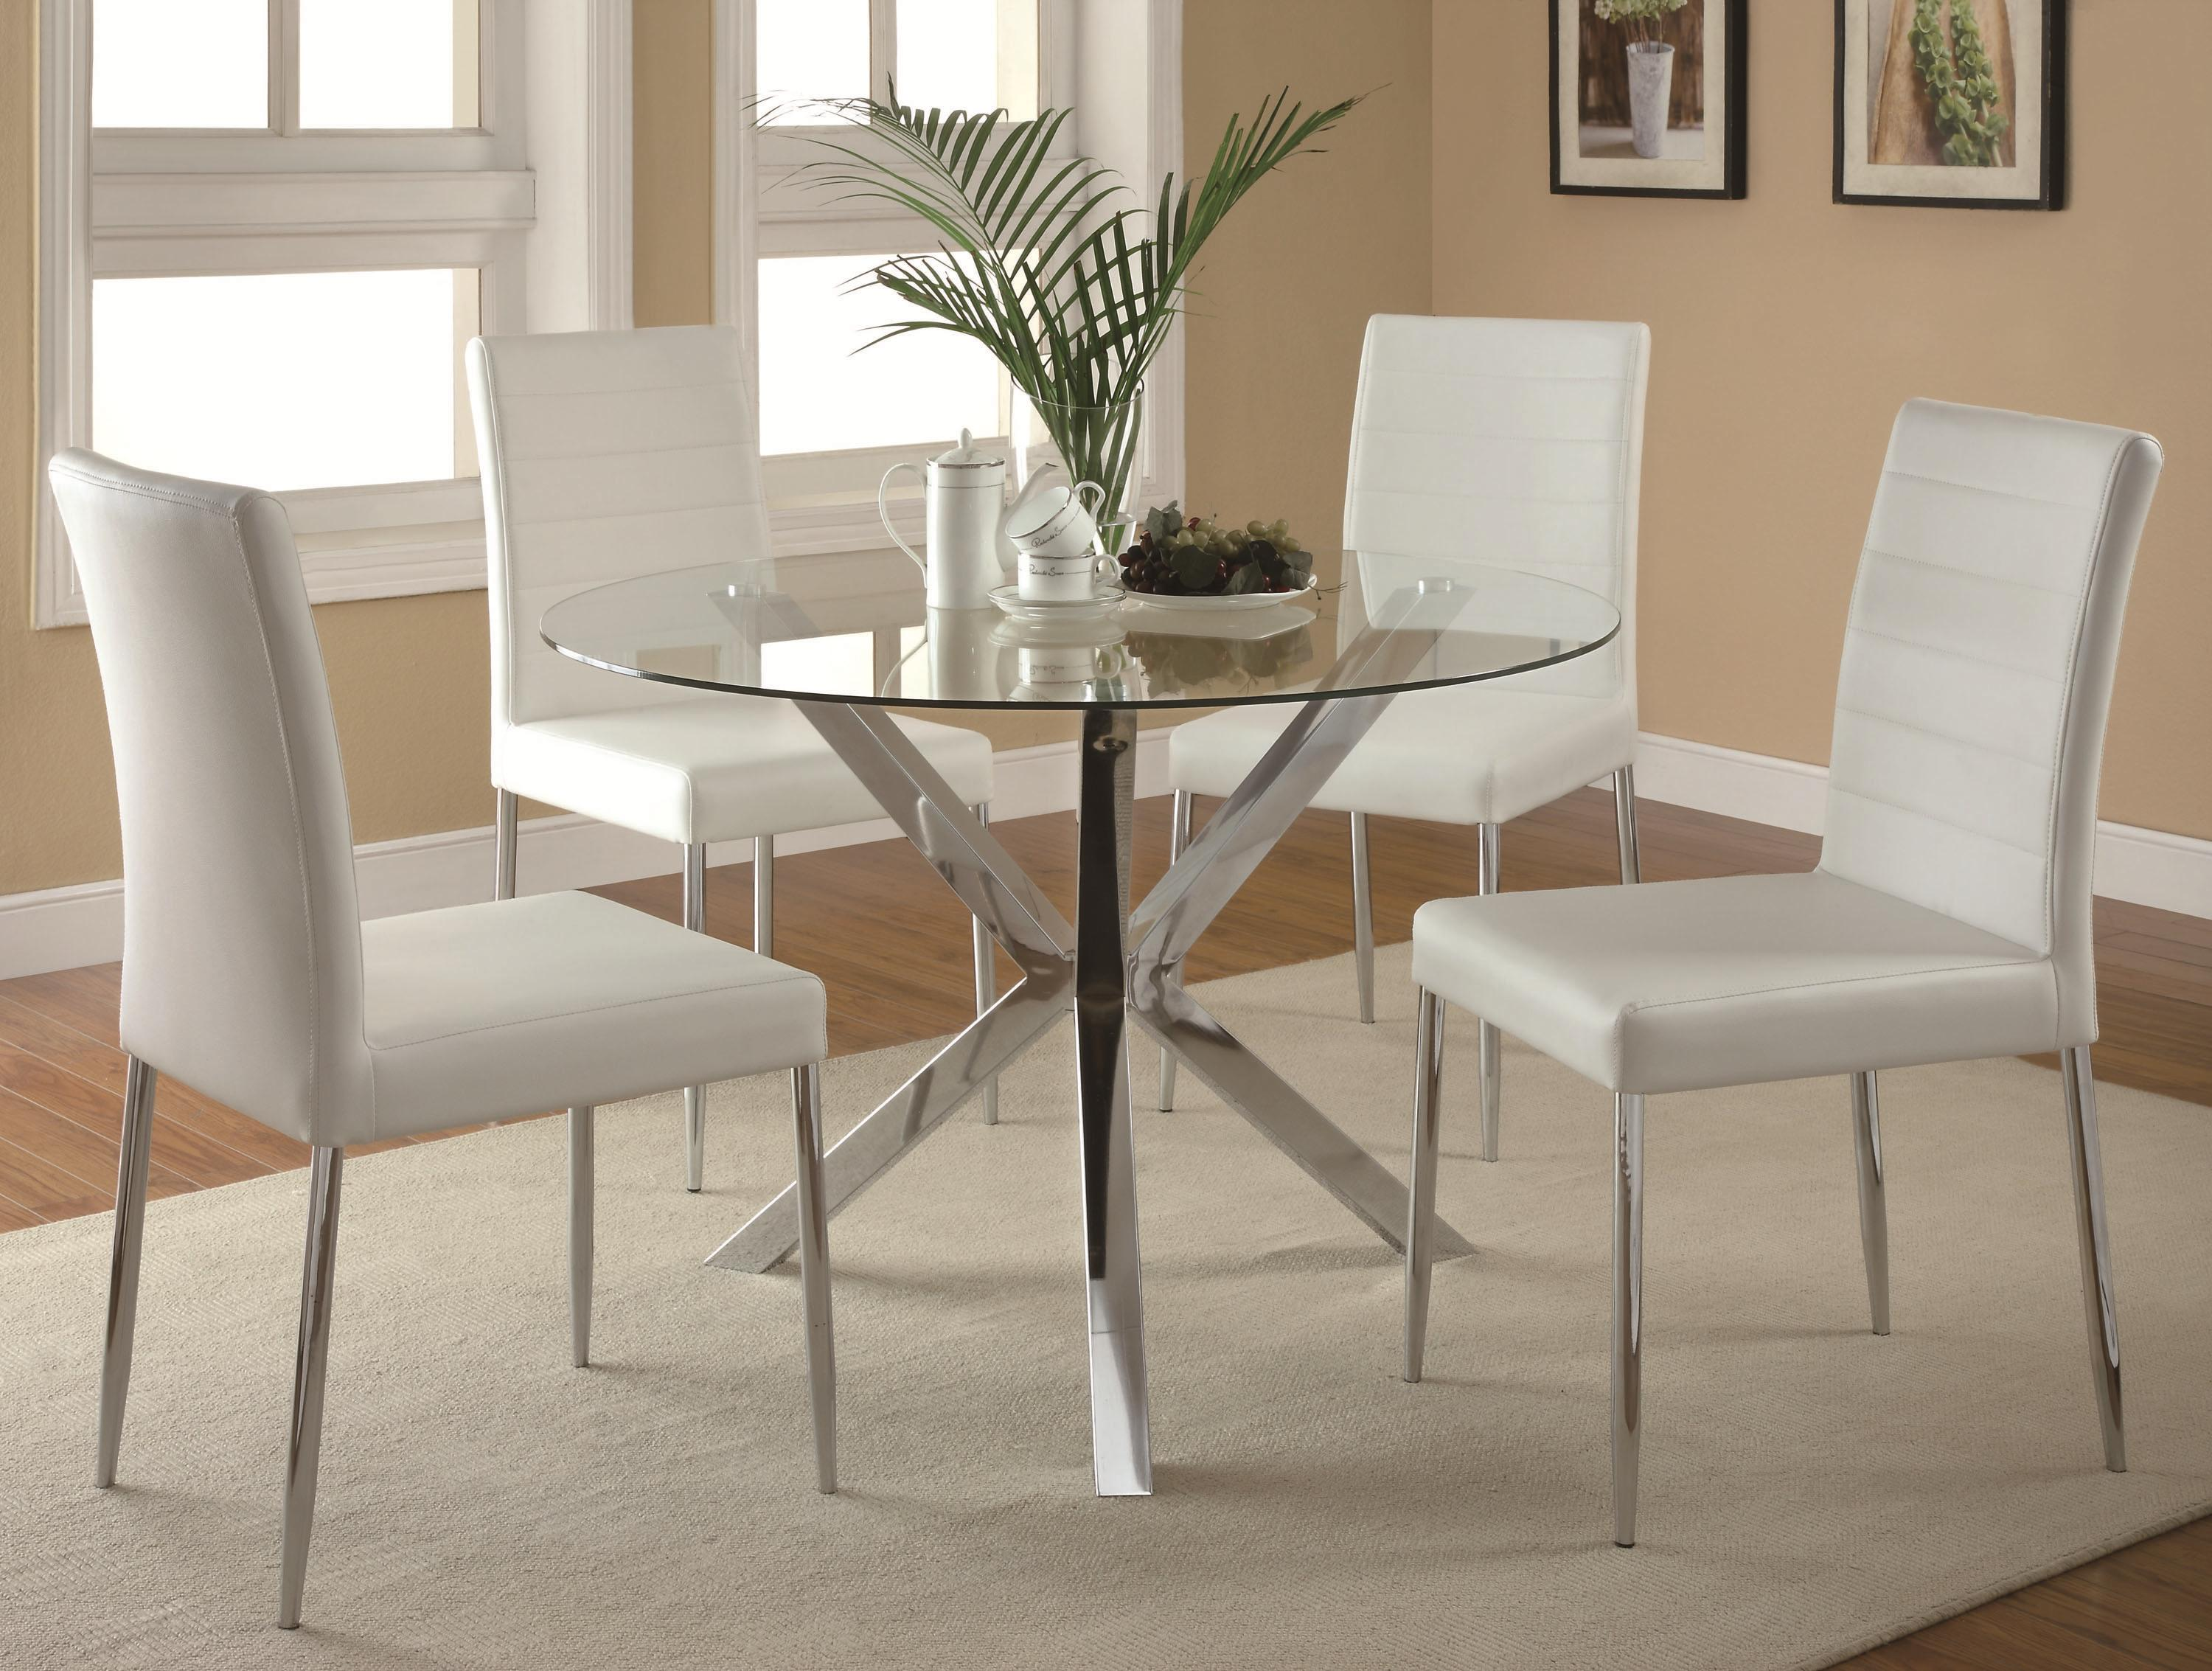 Glass Dining Table And Chairs Vance Contemporary 5 Piece Glass Top Table And Chair Set By Coaster At Dunk Bright Furniture